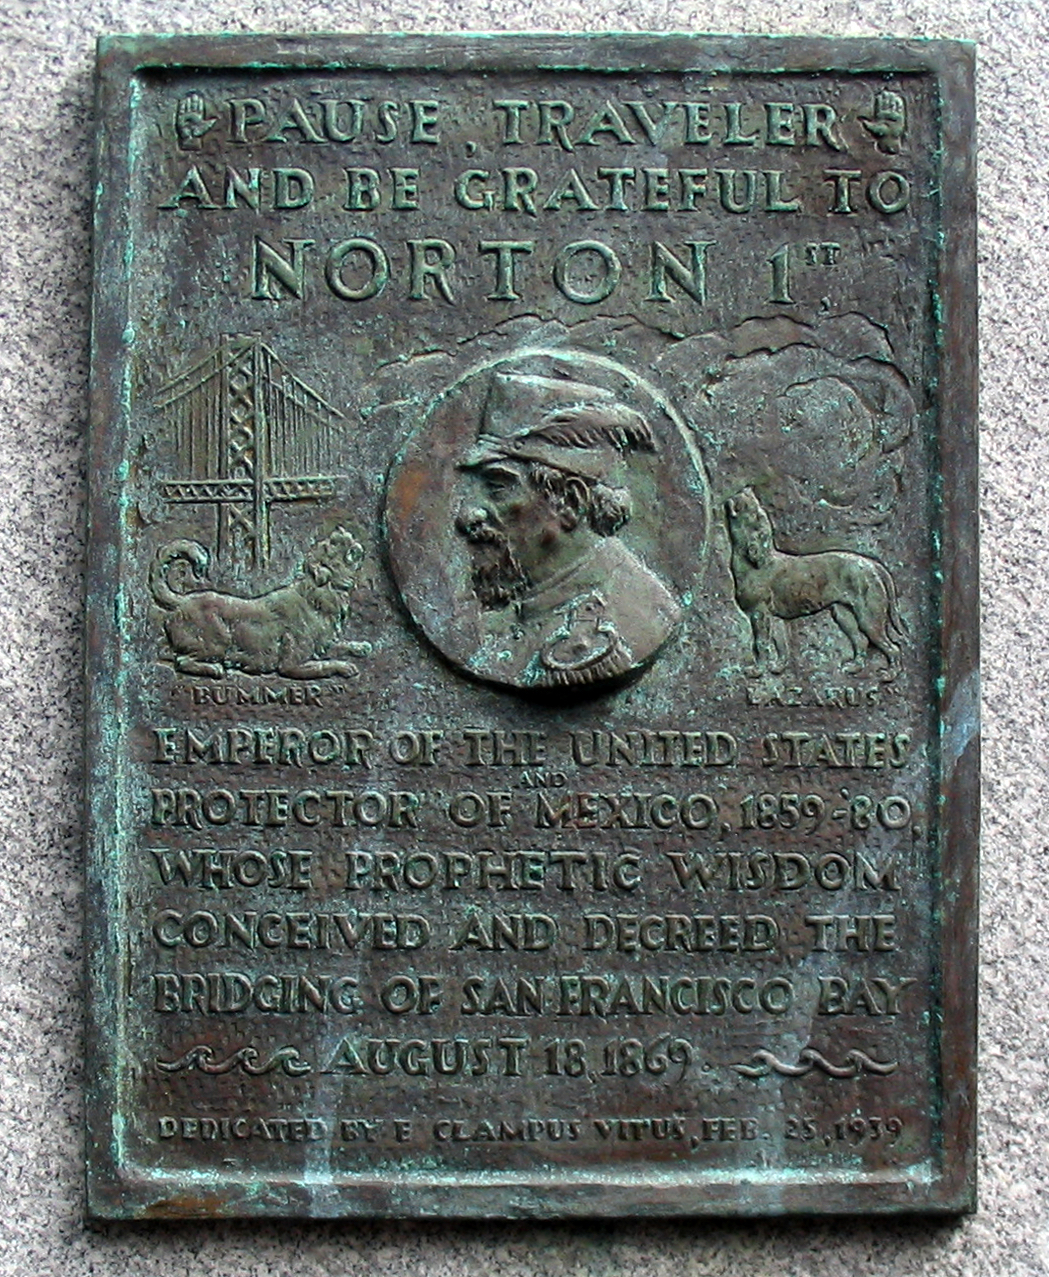 Plaque, commissioned by E Clampus Vitus, honoring Emperor Norton for setting out the vision for the San Francisco-Oakland Bay Bridge. Photograph: John Nagle. Source:  Wikimedia Commons .